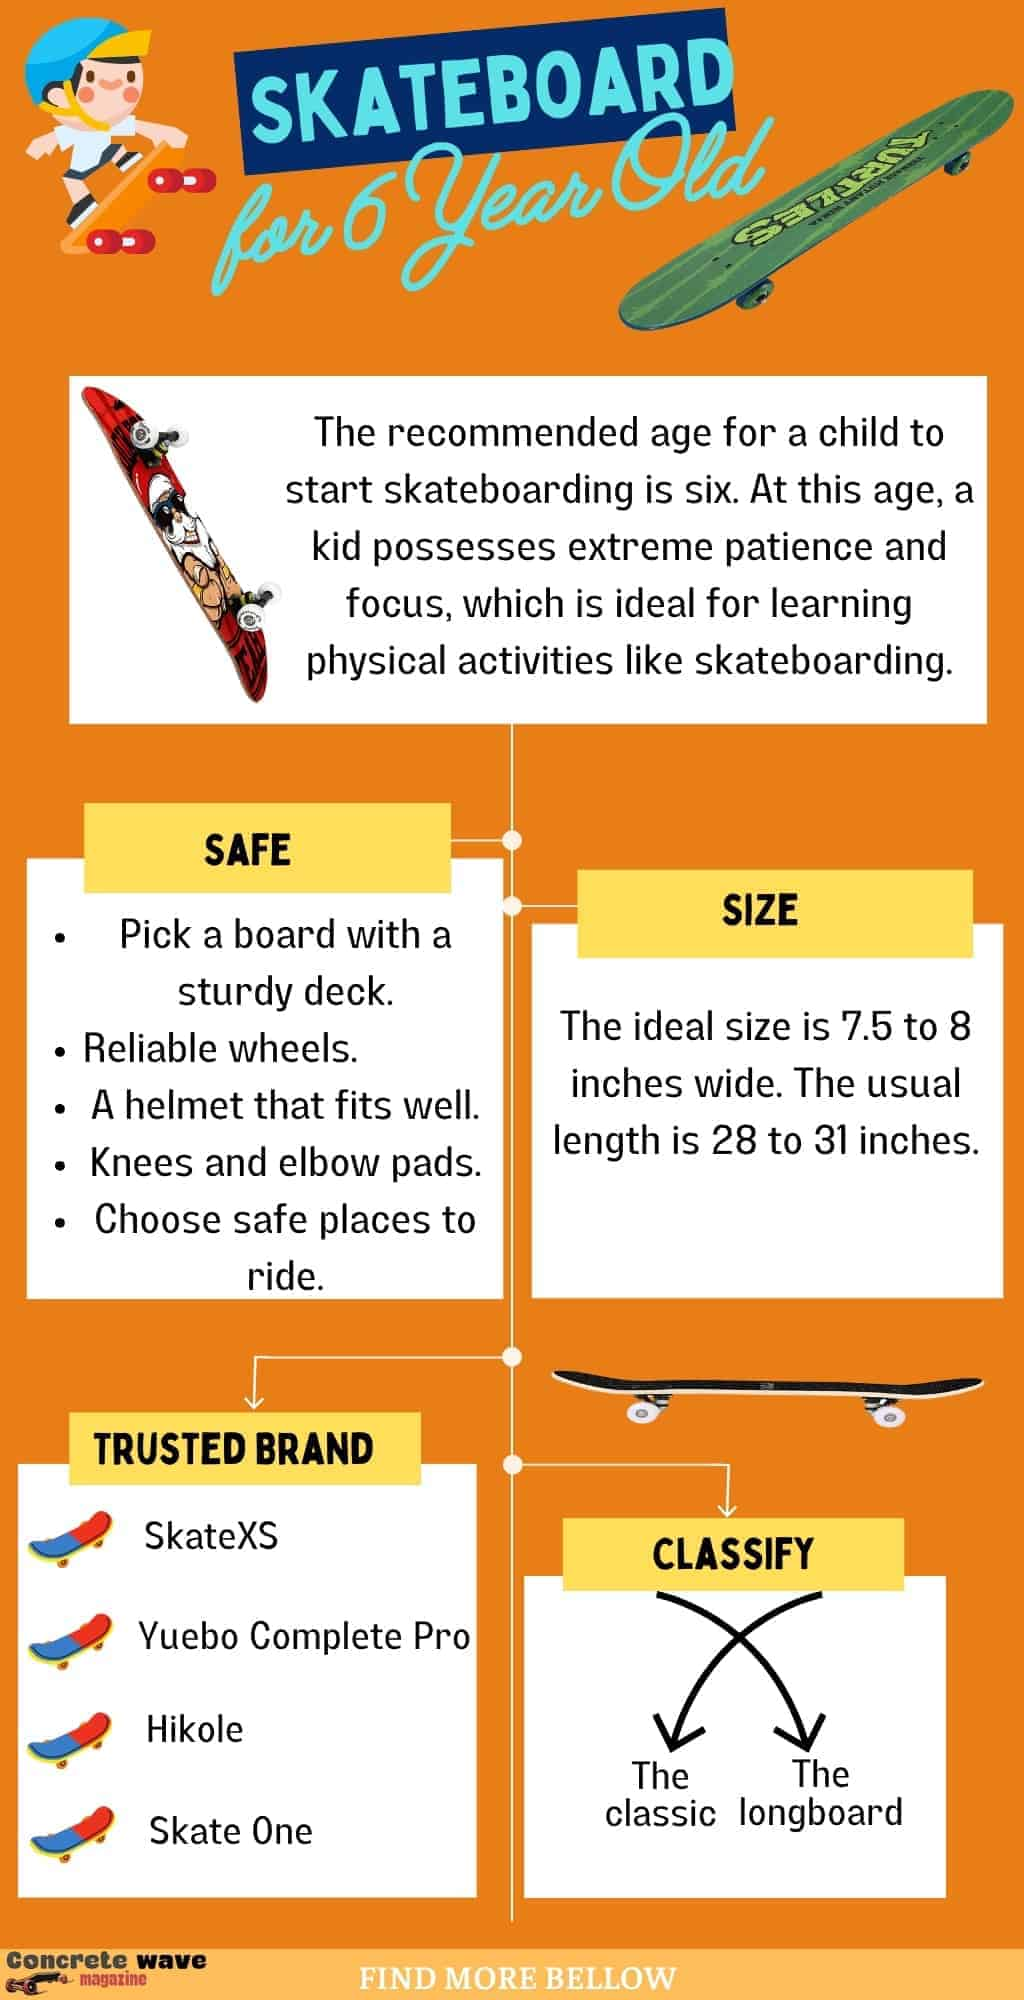 skateboard-size-for-6-year-old